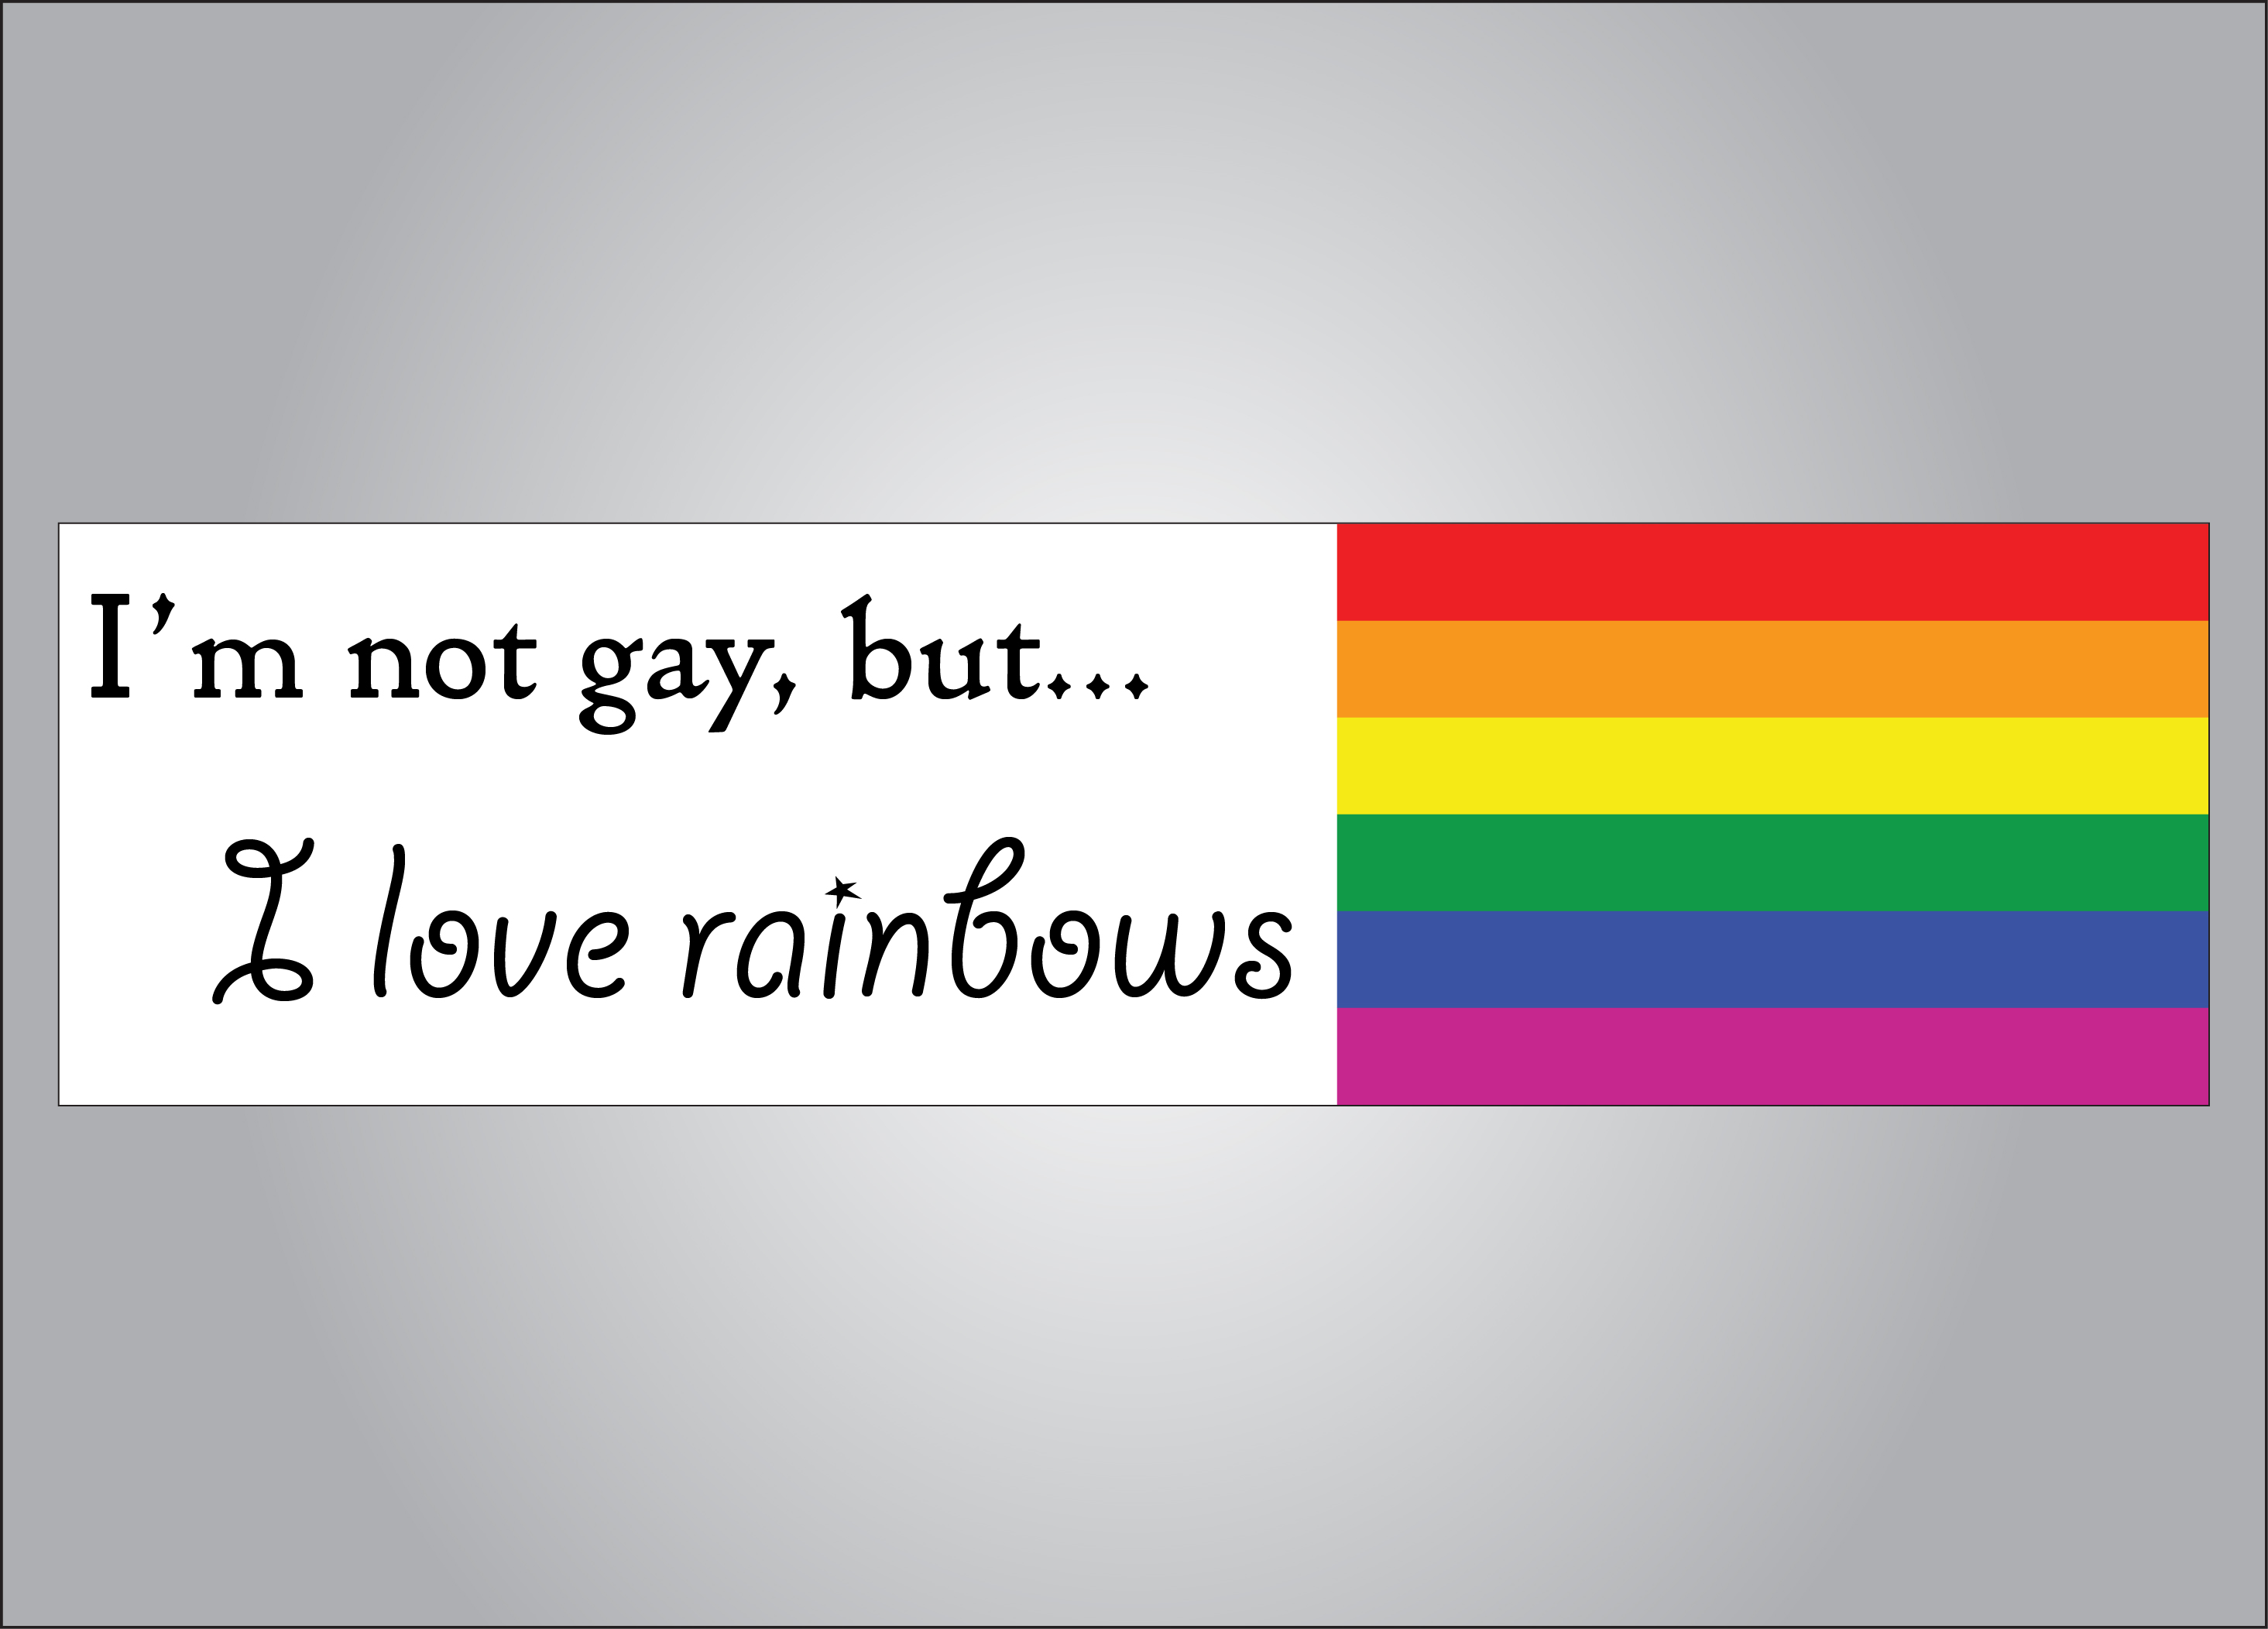 You can have a rainbow even if you are not gay!